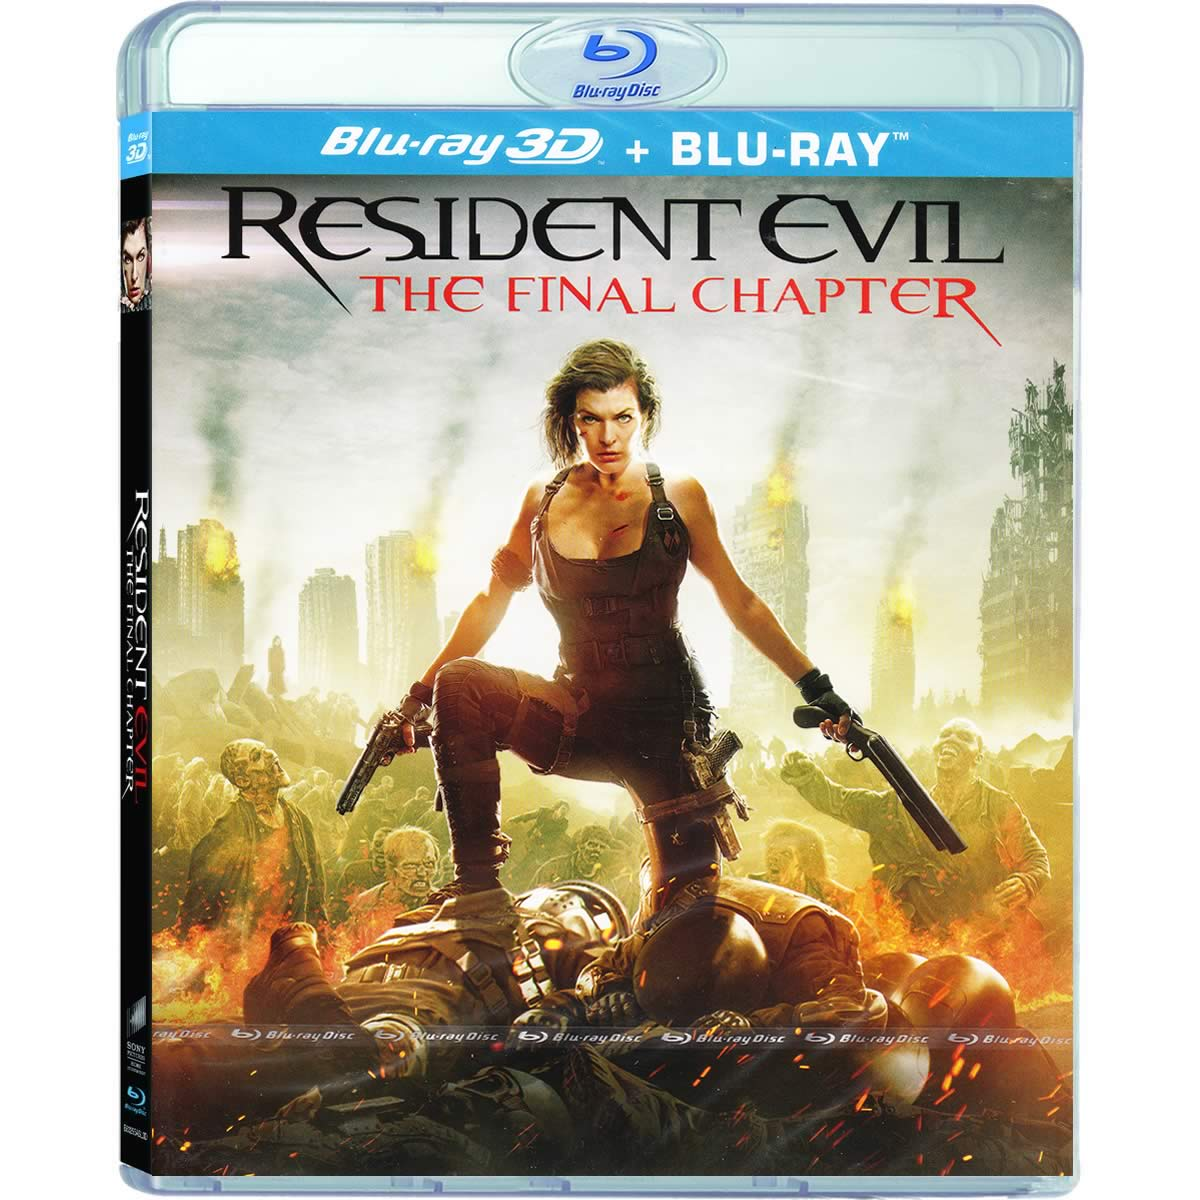 RESIDENT EVIL: THE FINAL CHAPTER 3D (BLU-RAY 3D + BLU-RAY)